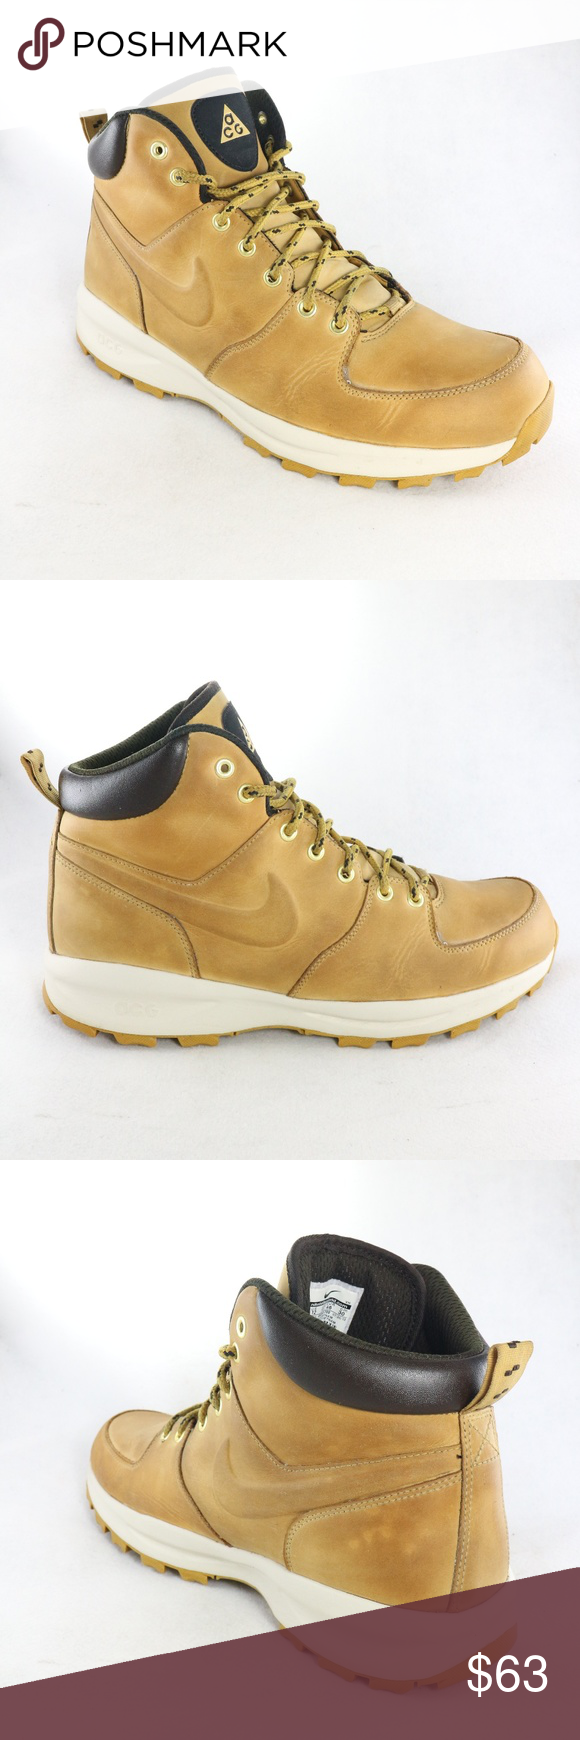 alta calidad promoción color atractivo NIKE ACG Manoa Haystack Leather Hiking Boots | Leather hiking ...